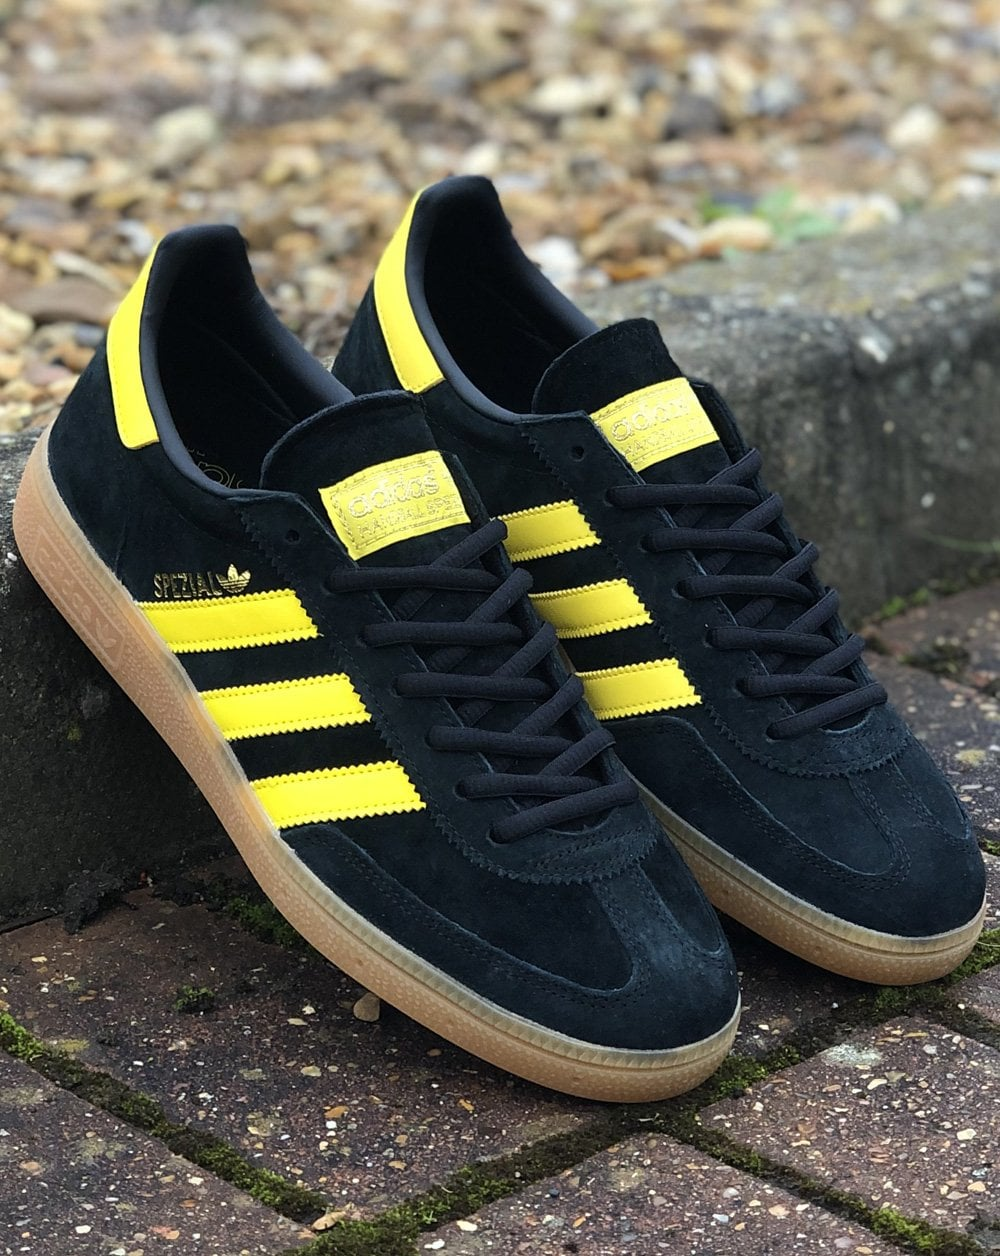 Adidas Spezial Trainers in Oslo Black/yellow